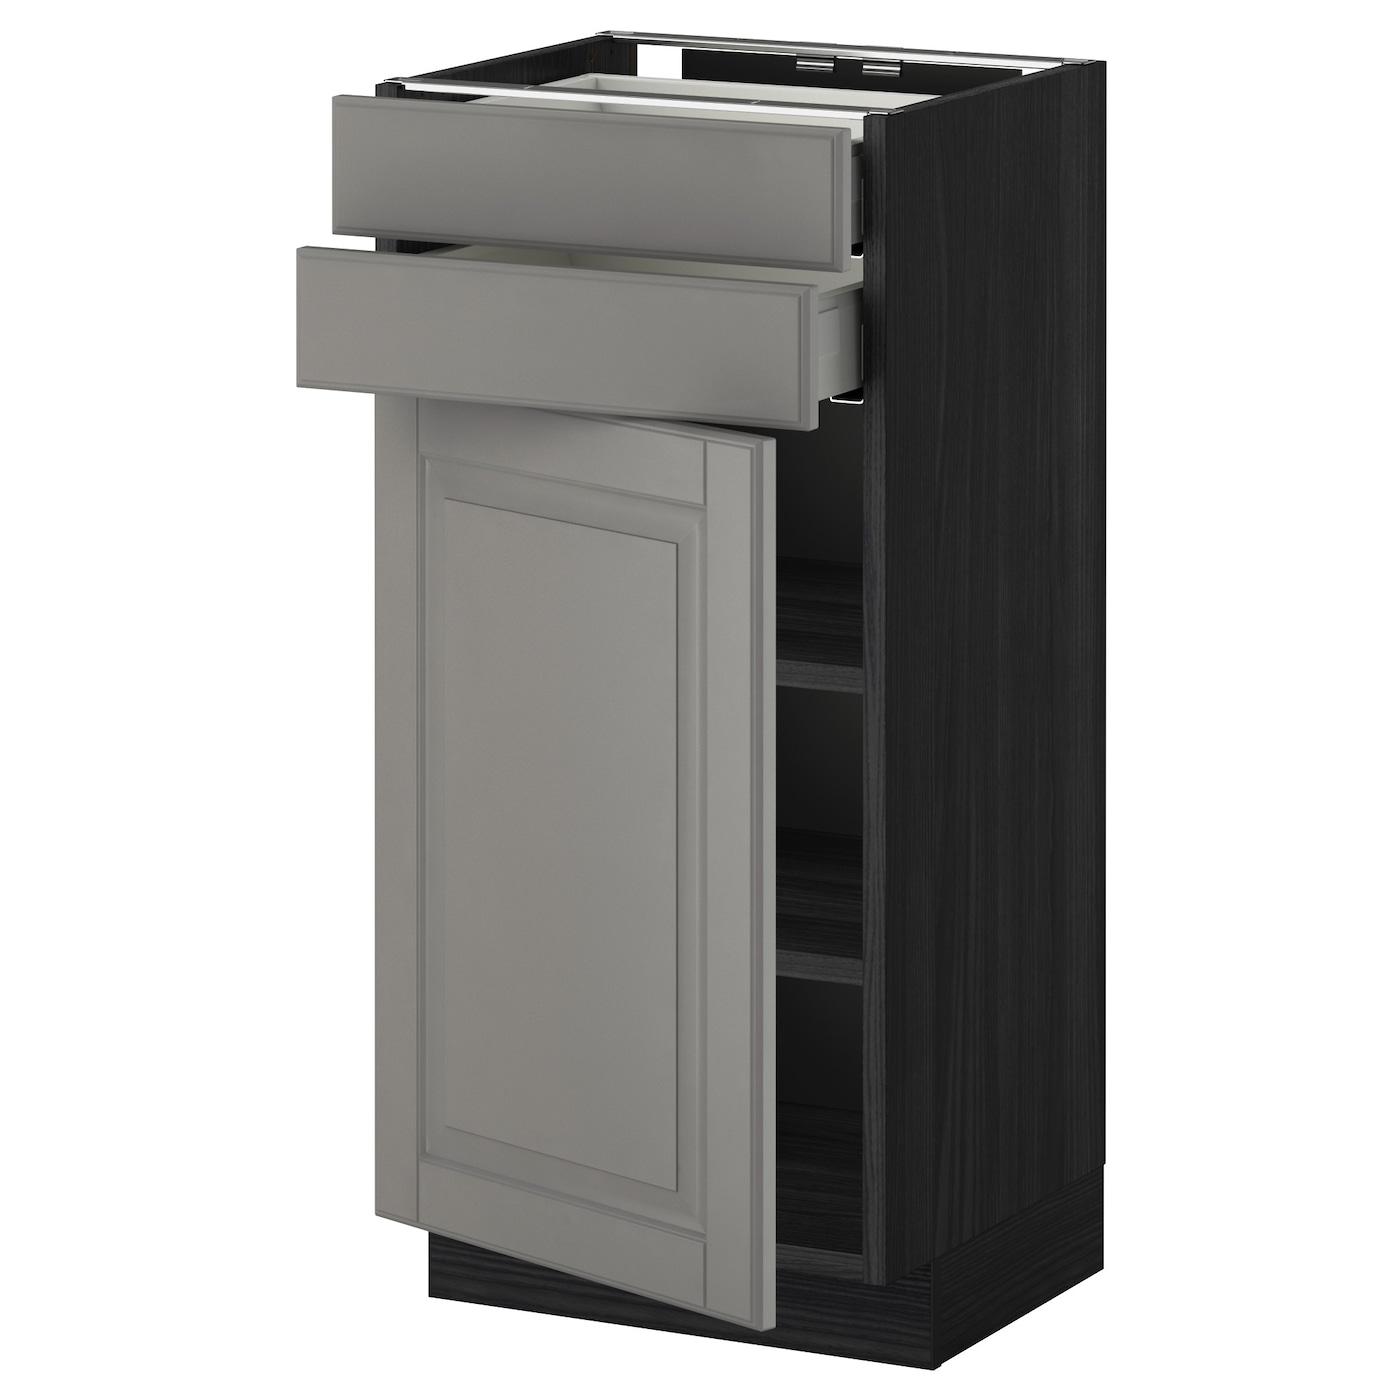 black base kitchen cabinets metod maximera base cabinet w door 2 drawers black bodbyn 12317